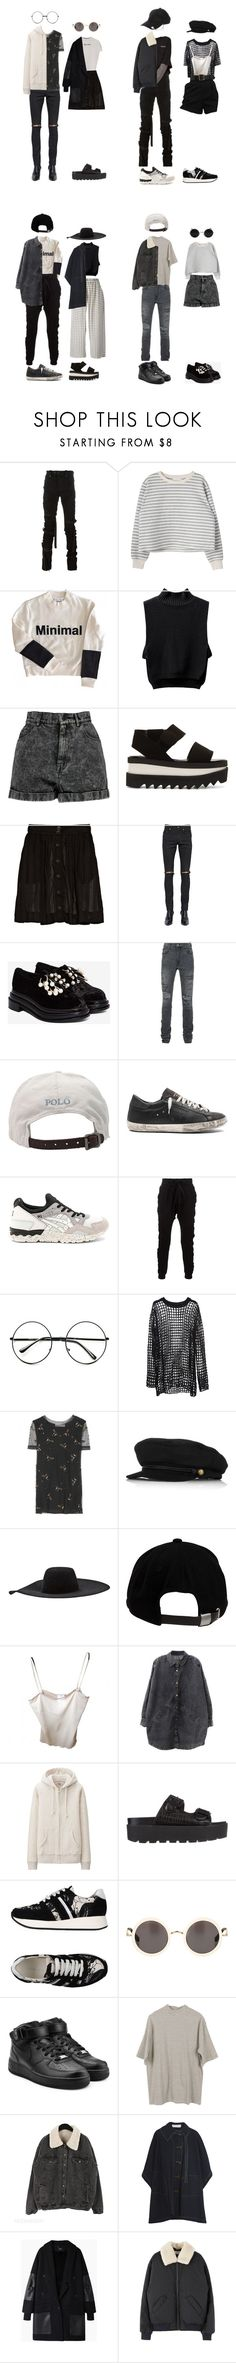 """""""he and i <3"""" by jayda-xx ❤ liked on Polyvore featuring Unravel, Boohoo, STELLA McCARTNEY, rag & bone, Yves Saint Laurent, Jeffrey Campbell, AMIRI, Polo Ralph Lauren, Golden Goose and Asics"""